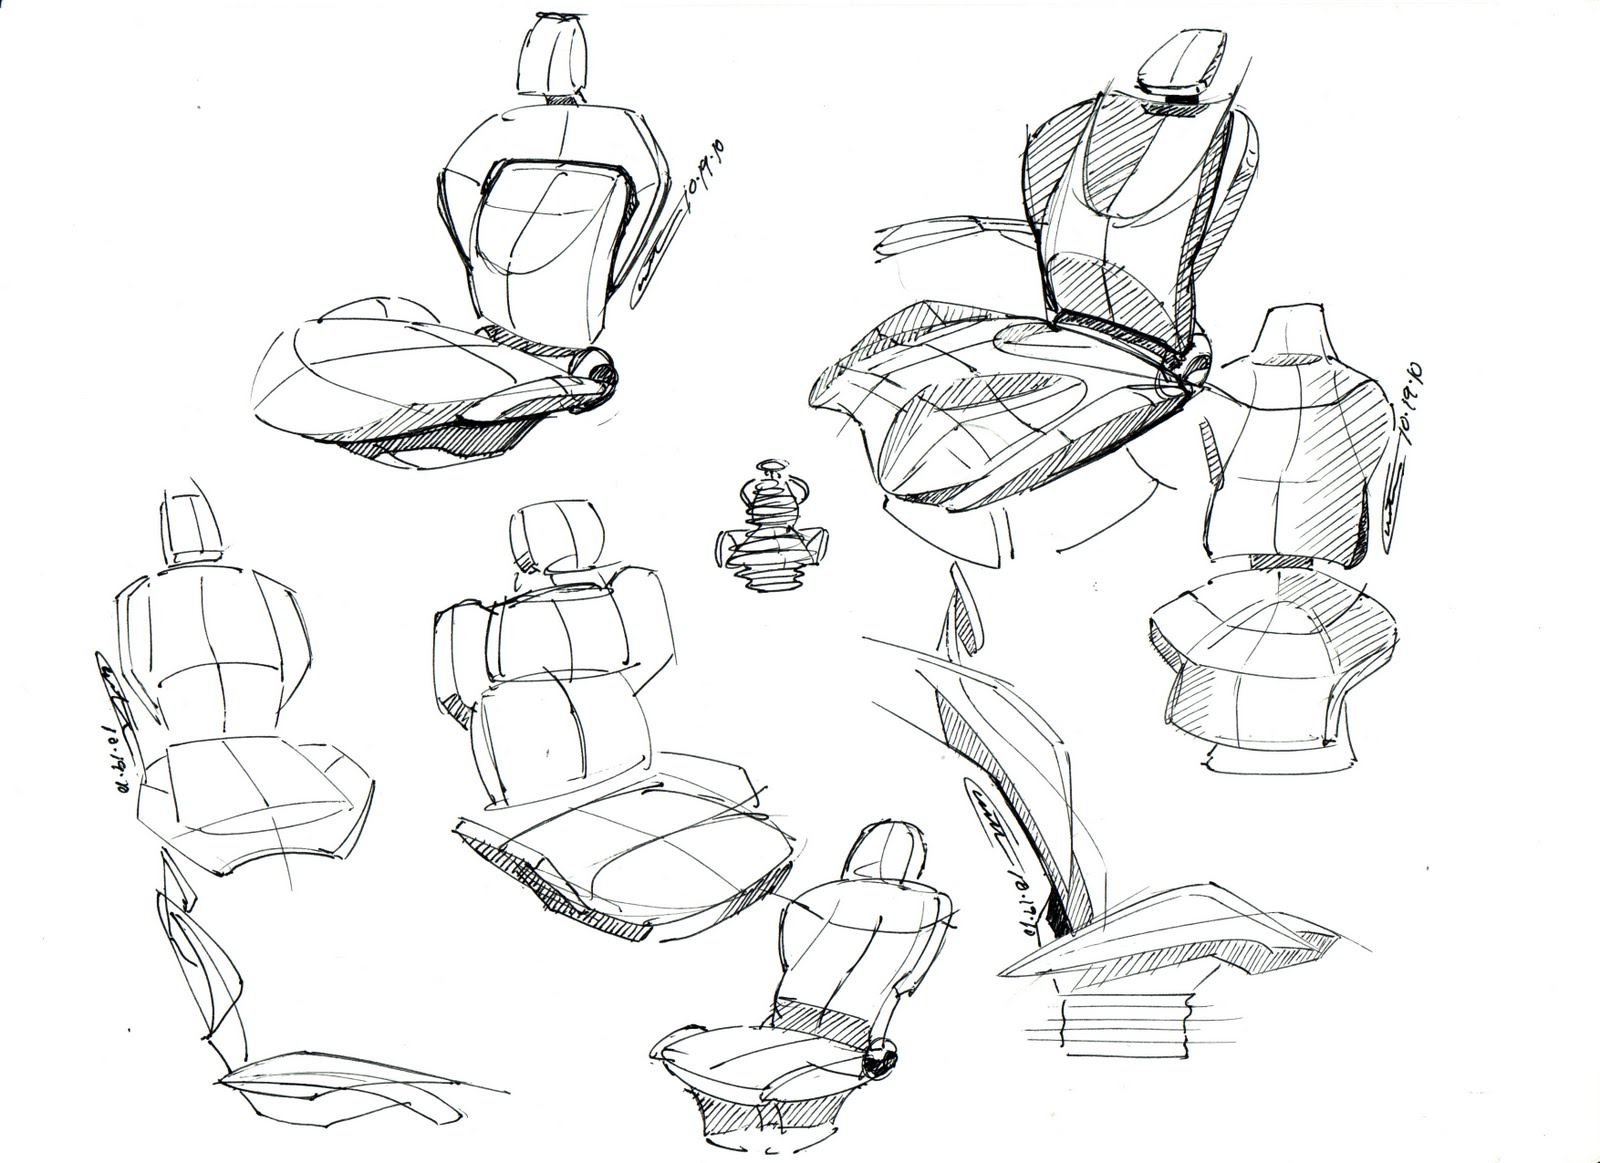 1600x1163 Custer Design Works Early Seat Sketches For A Class 8 Truck